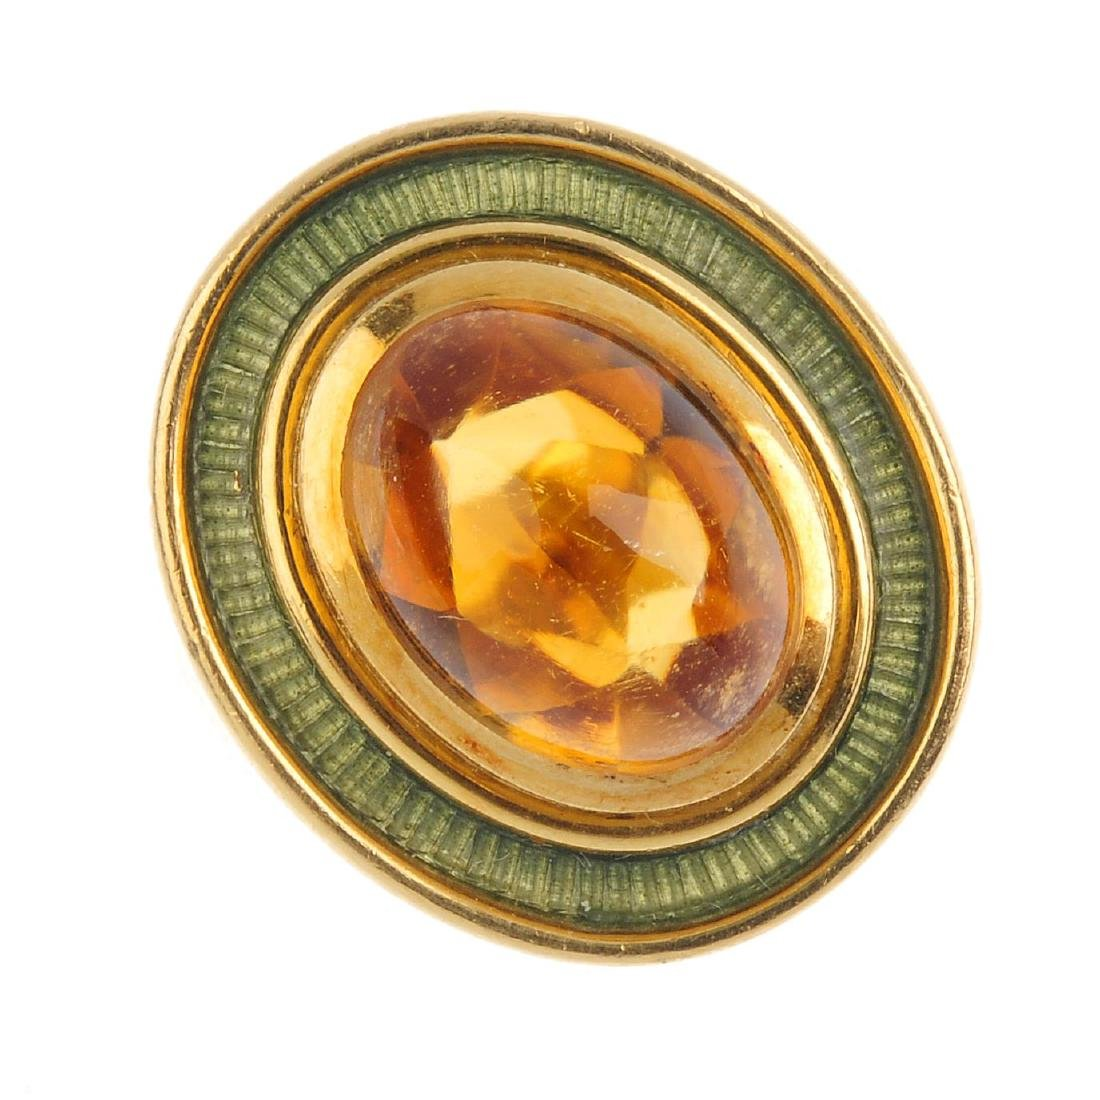 DE VROOMEN - an 18ct gold citrine and enamel ring. The